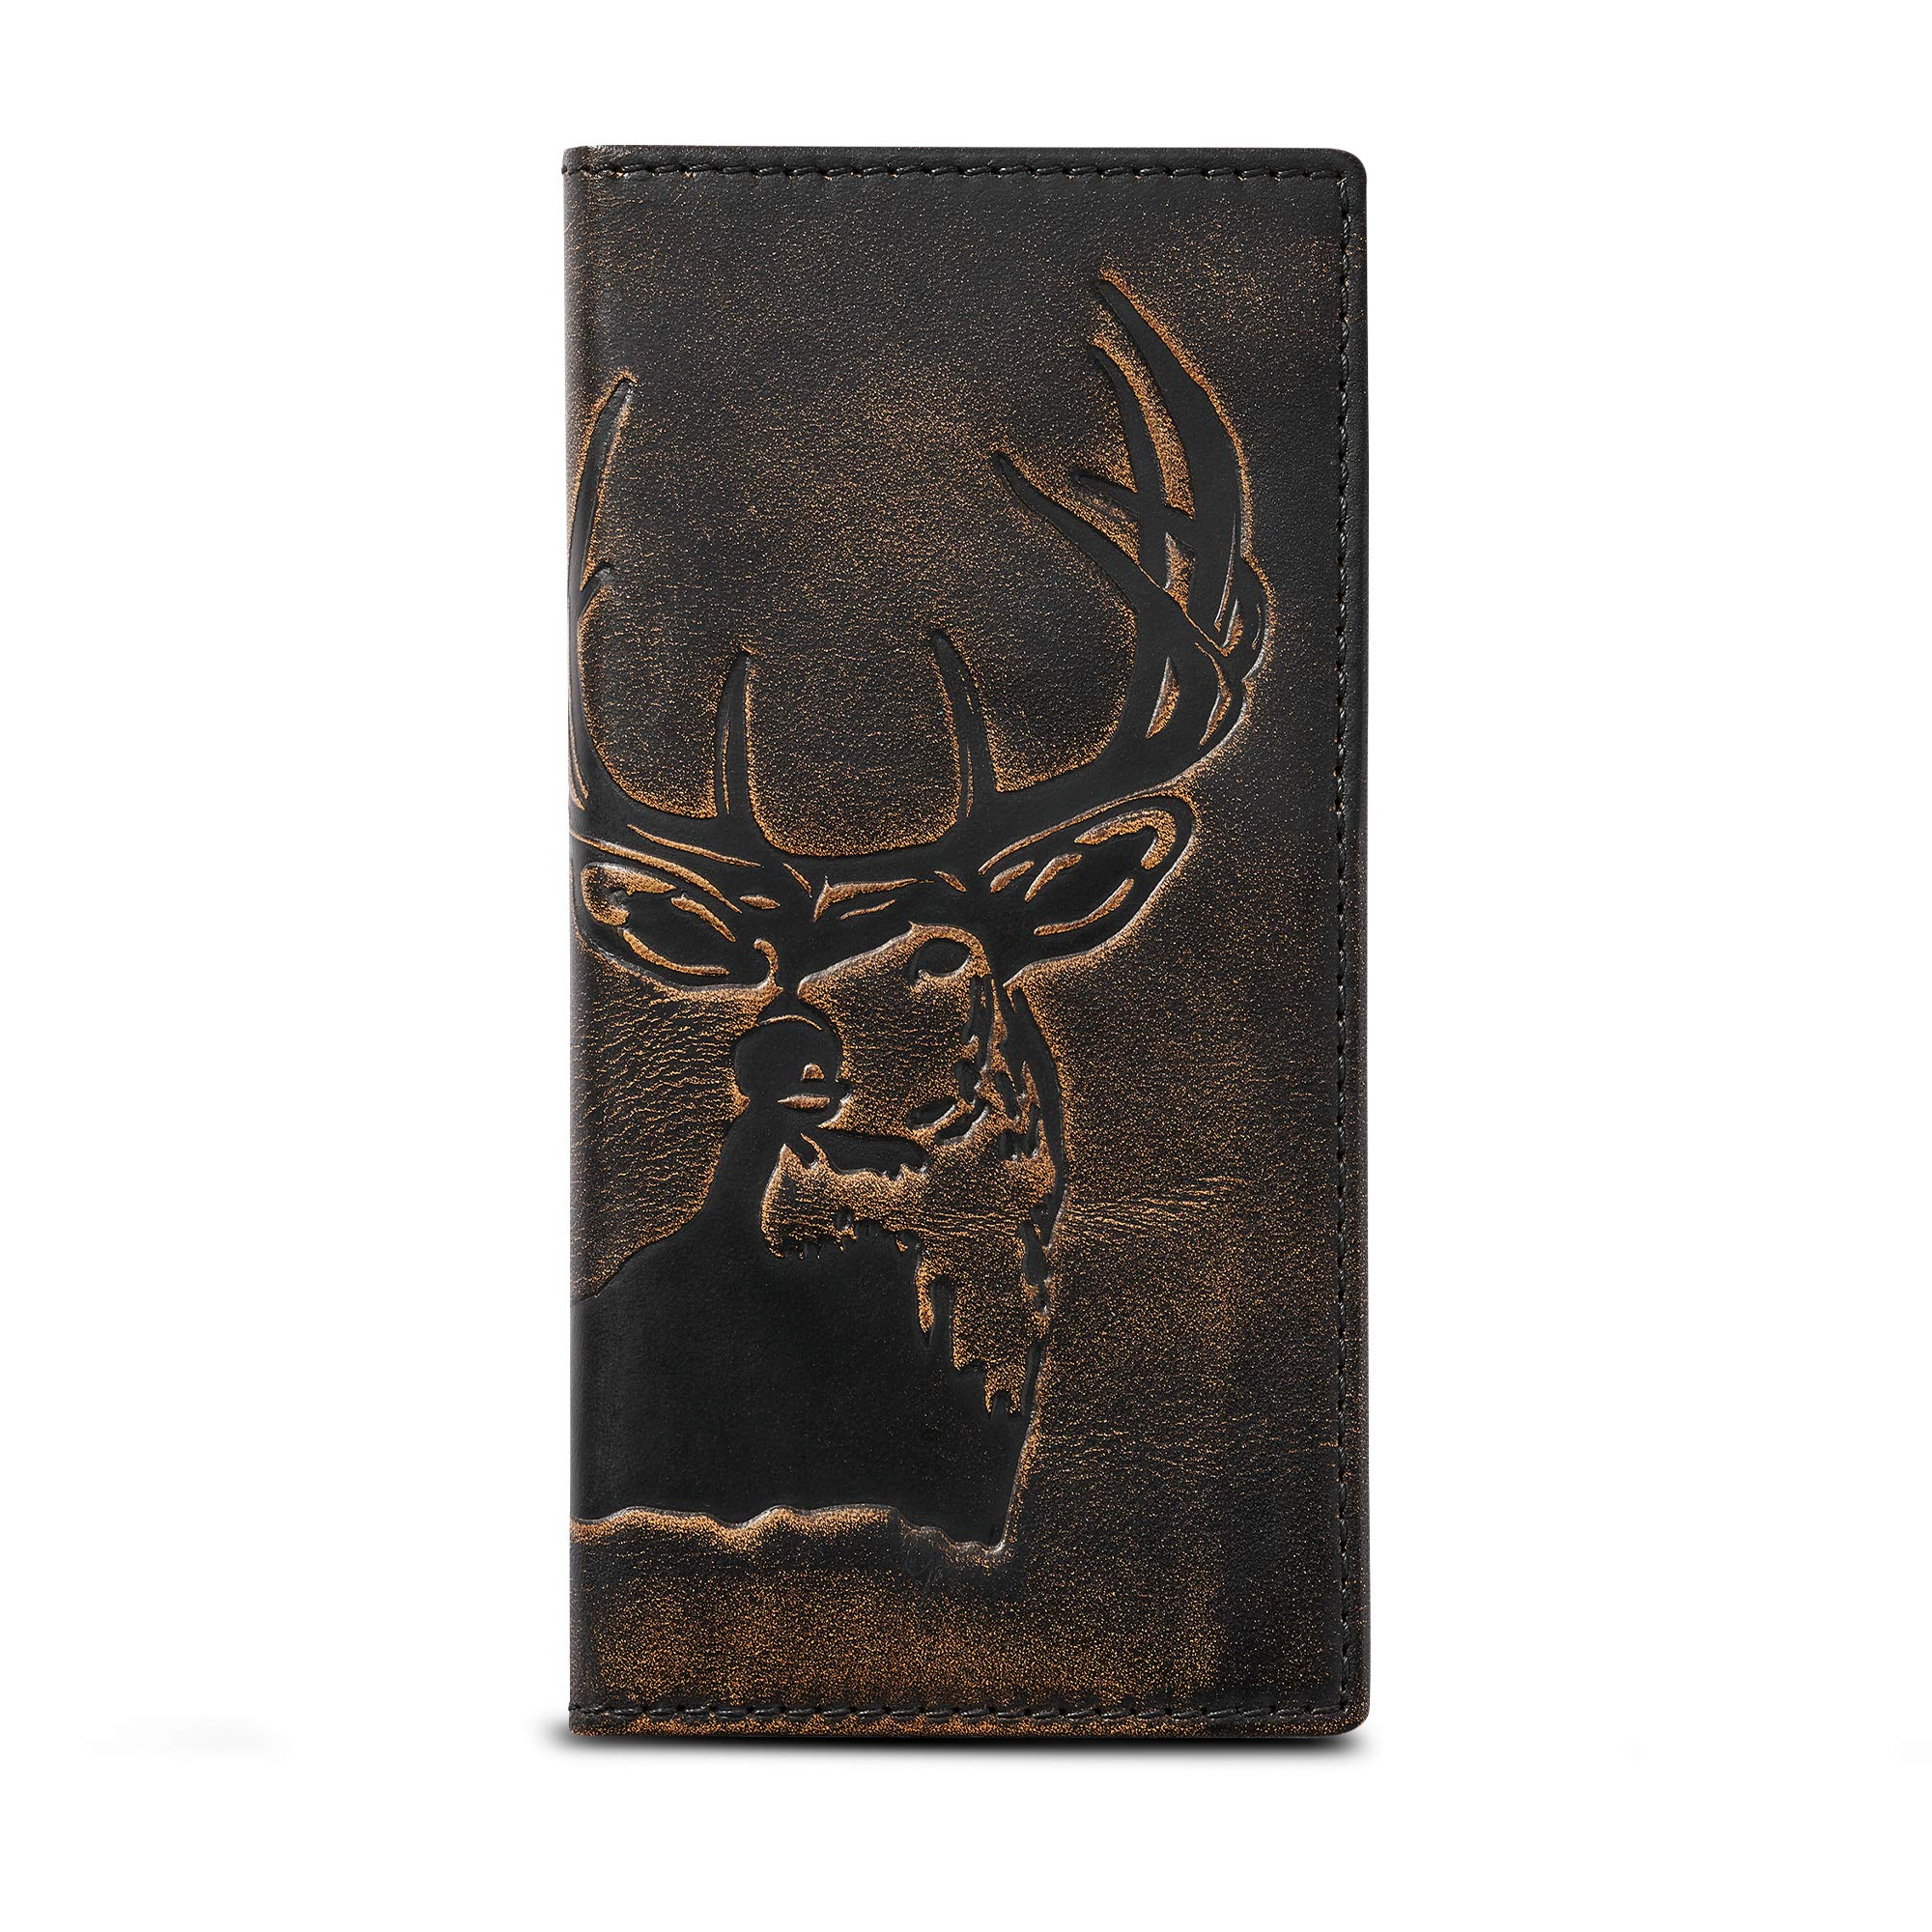 HOJ Co. DEER Long Bifold Wallet-Premium Grade Leather-Mens TALL Wallet-Deer Hunter Gift-Rodeo Wallet